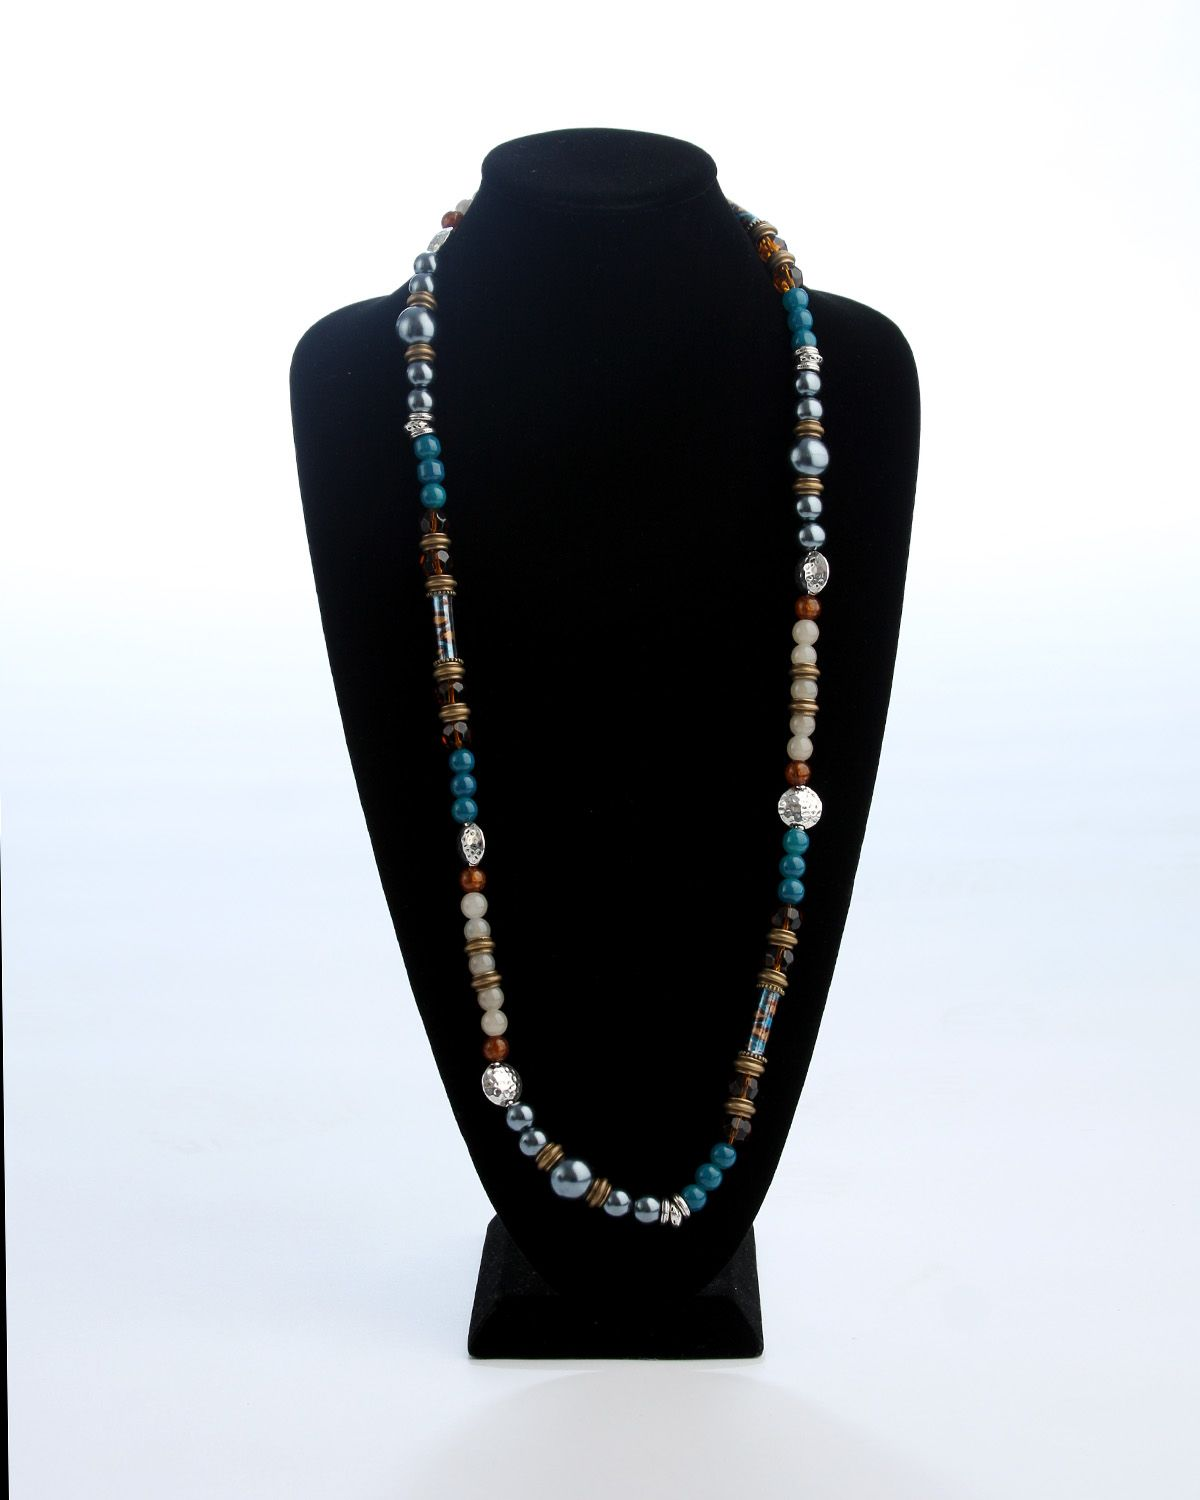 """Vi Bella Jewelry - Seaside Necklace -The outstanding Seaside Necklace is made of a great combination of colors and textures that invoke the feeling of the seaside.  The Seaside Necklace is one long, beaded strand made using signature upcycled Vi Bella plastic bottle beads in colors of blue, copper, and brown, faceted brown glass beads, slate gray pearls, and beads of blue, antique bronze, and silver.      Length - 40.5""""  Handcrafted by Vi Bella Artists in Haiti.  $38.95"""